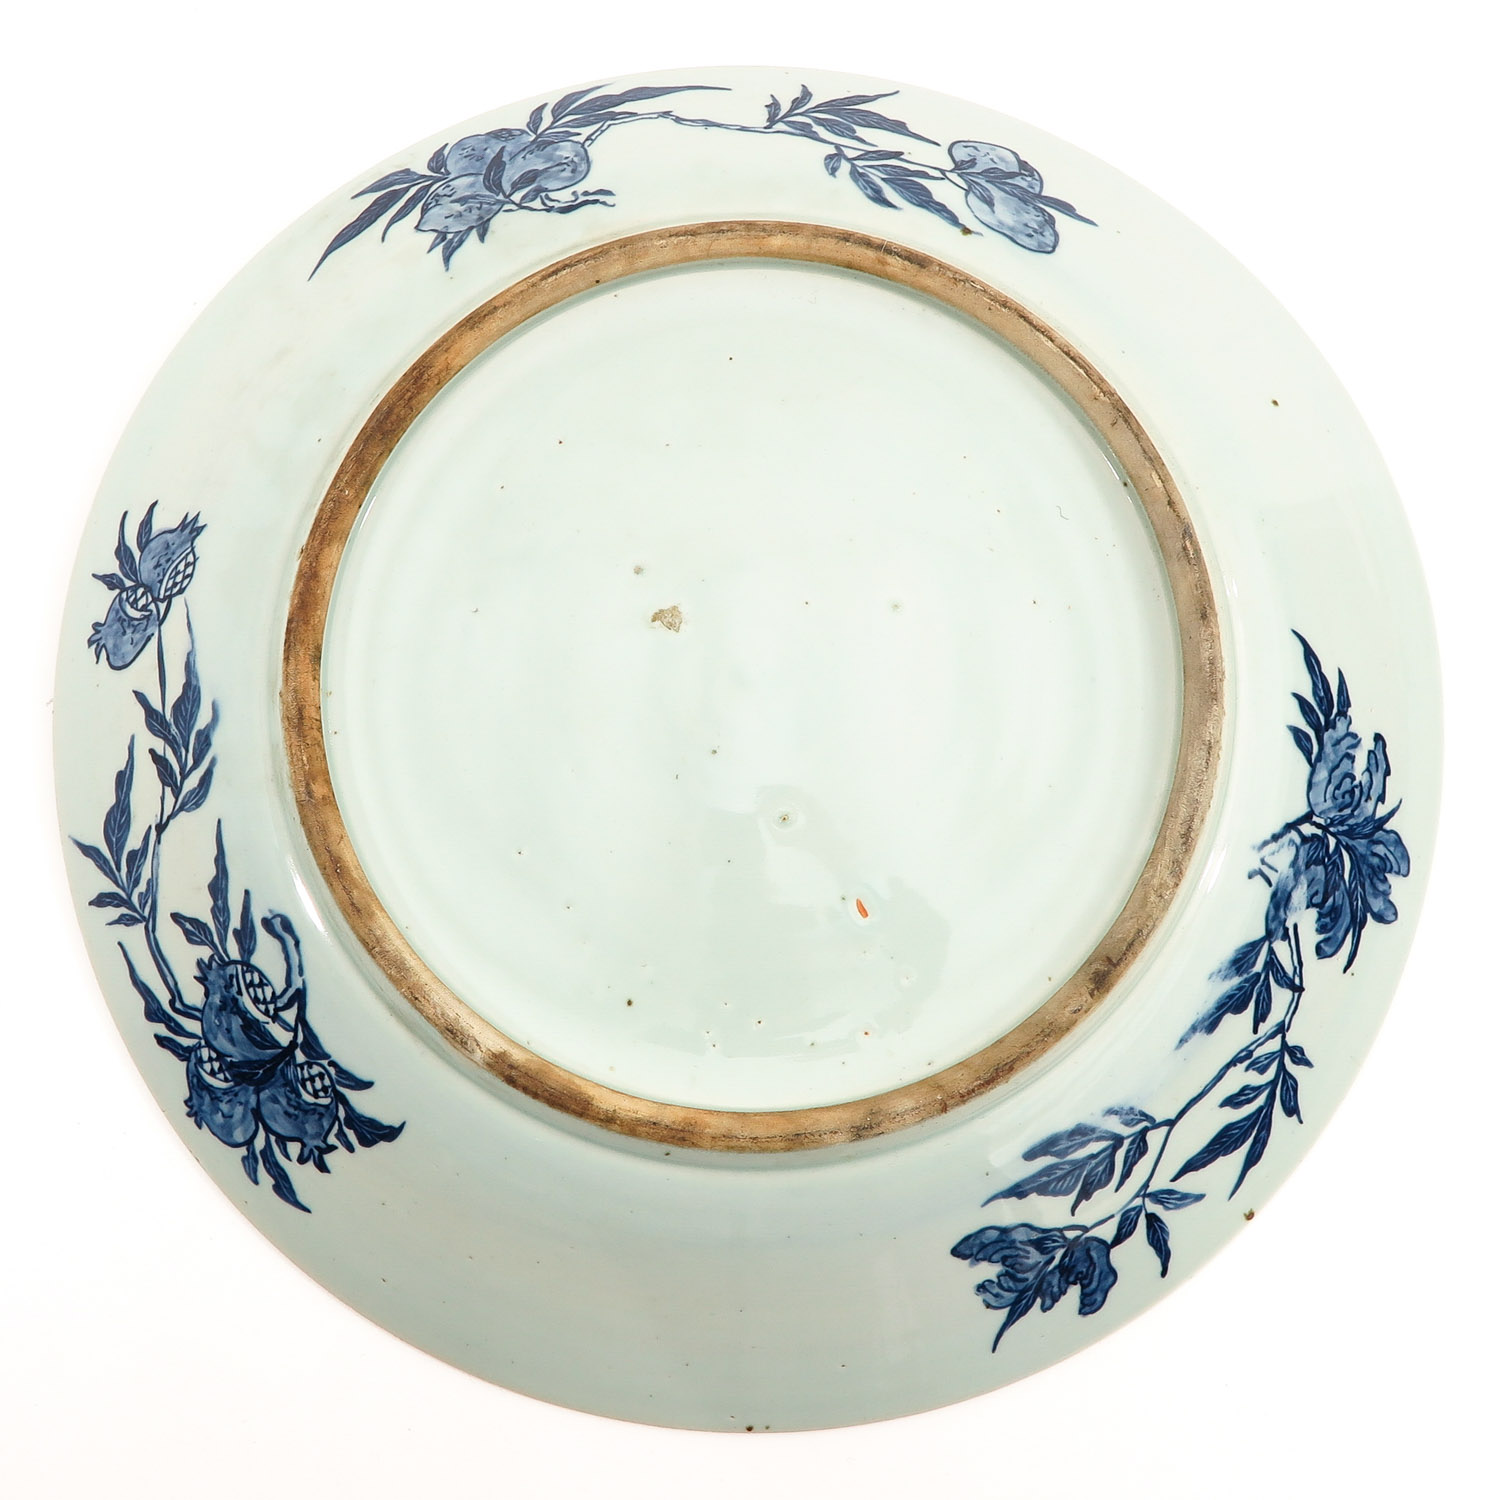 A Large Blue and White Charger - Image 2 of 7